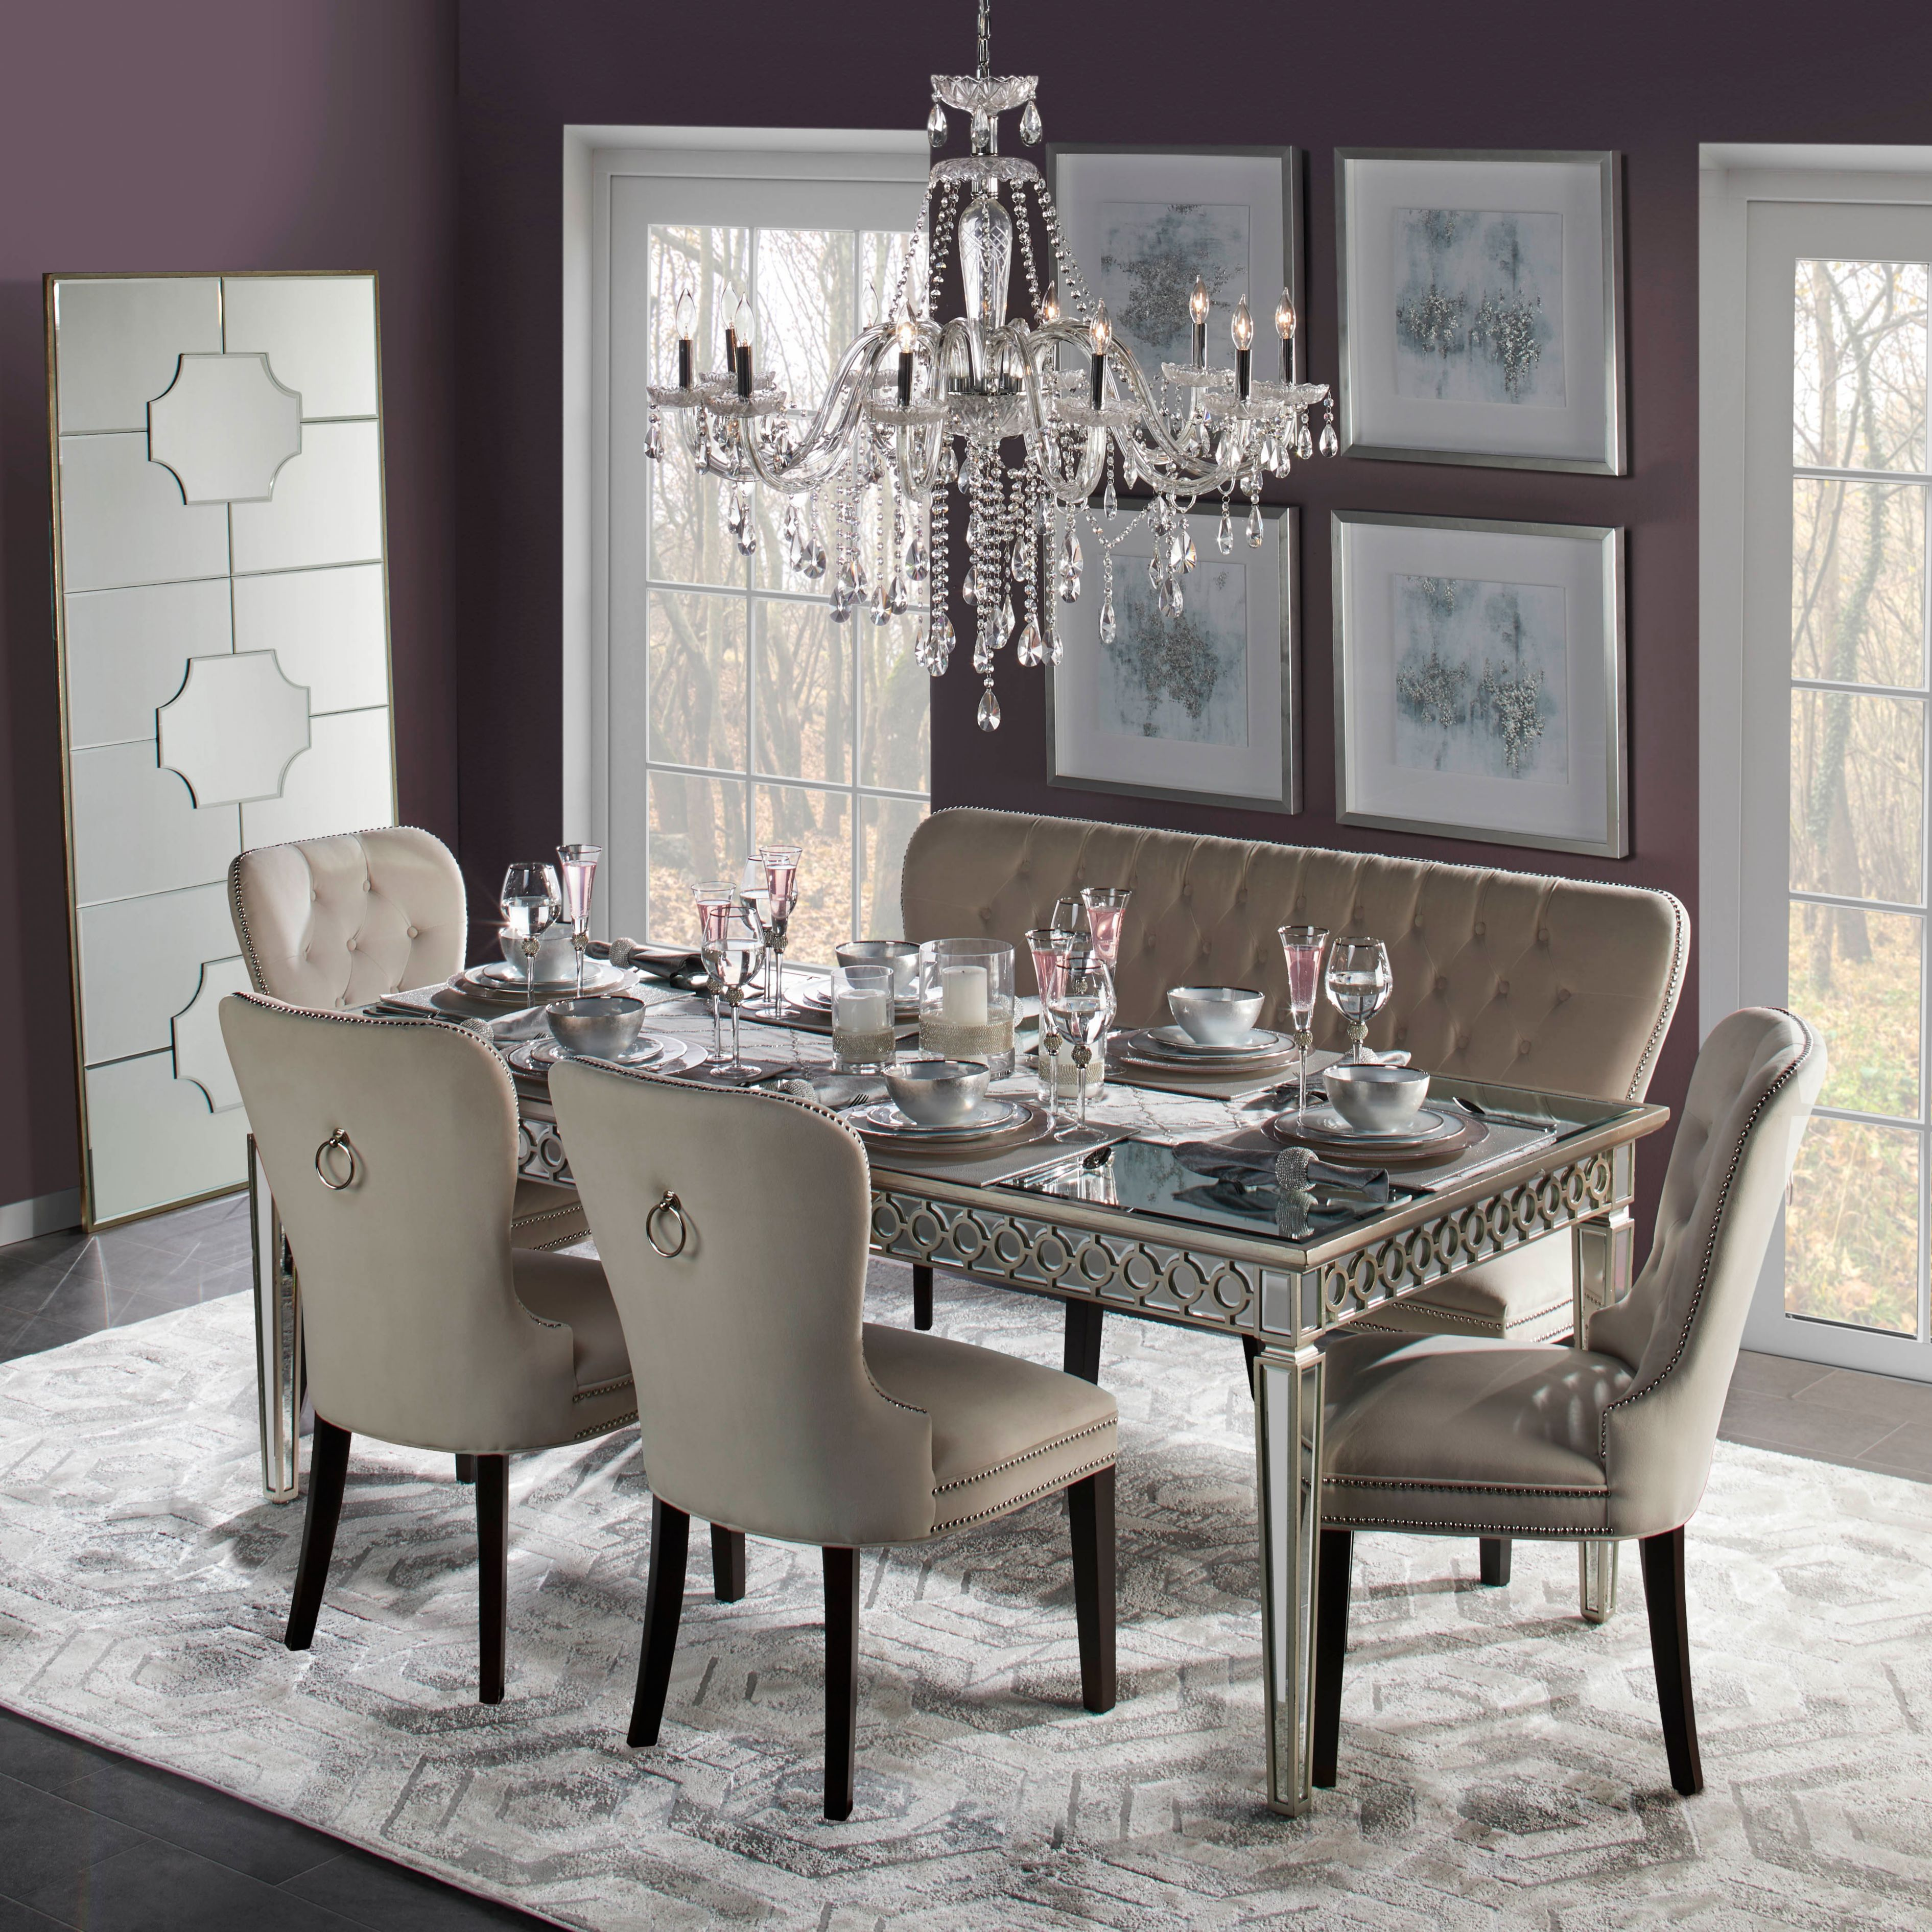 Charlotte Dining Chair Espresso, Z Gallerie Dining Room Chairs